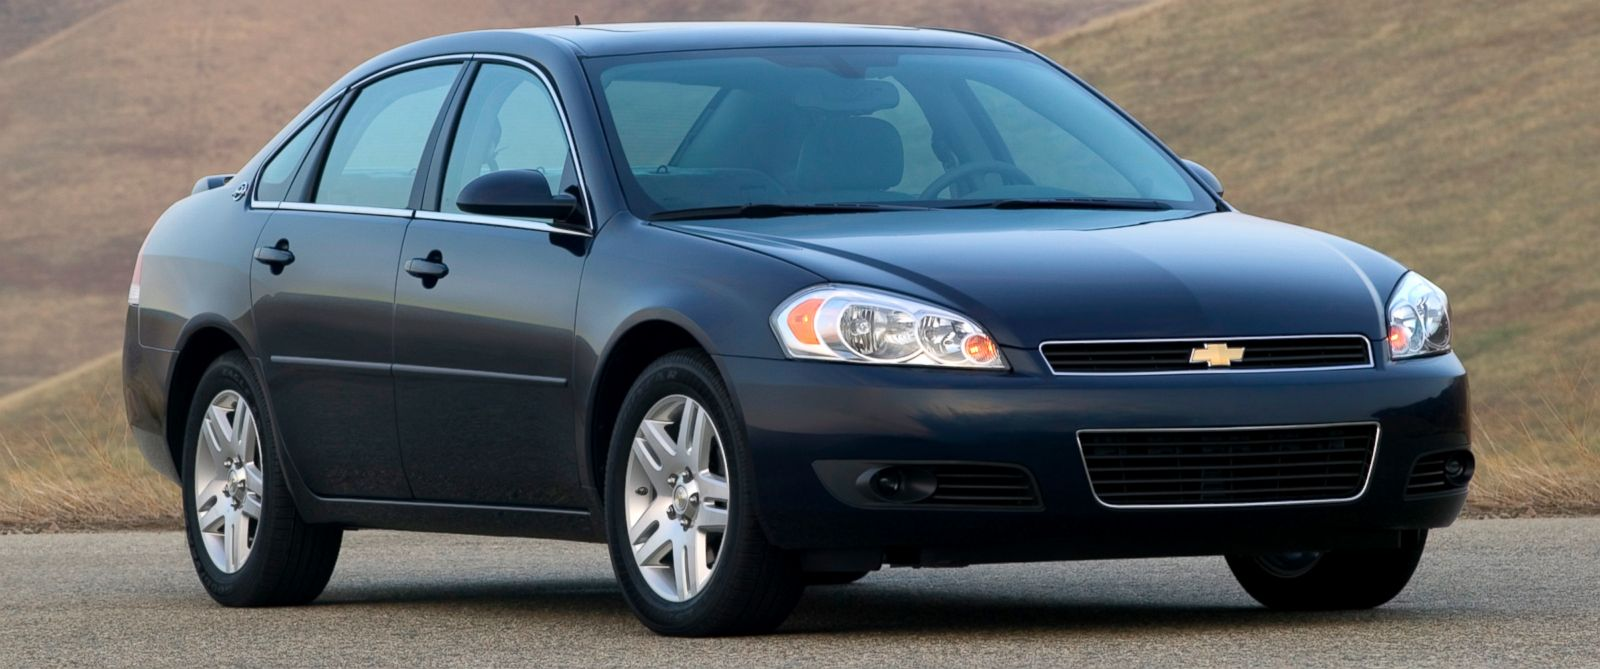 PHOTO: A 2006 Chevrolet Impala LTZ is seen in this image.